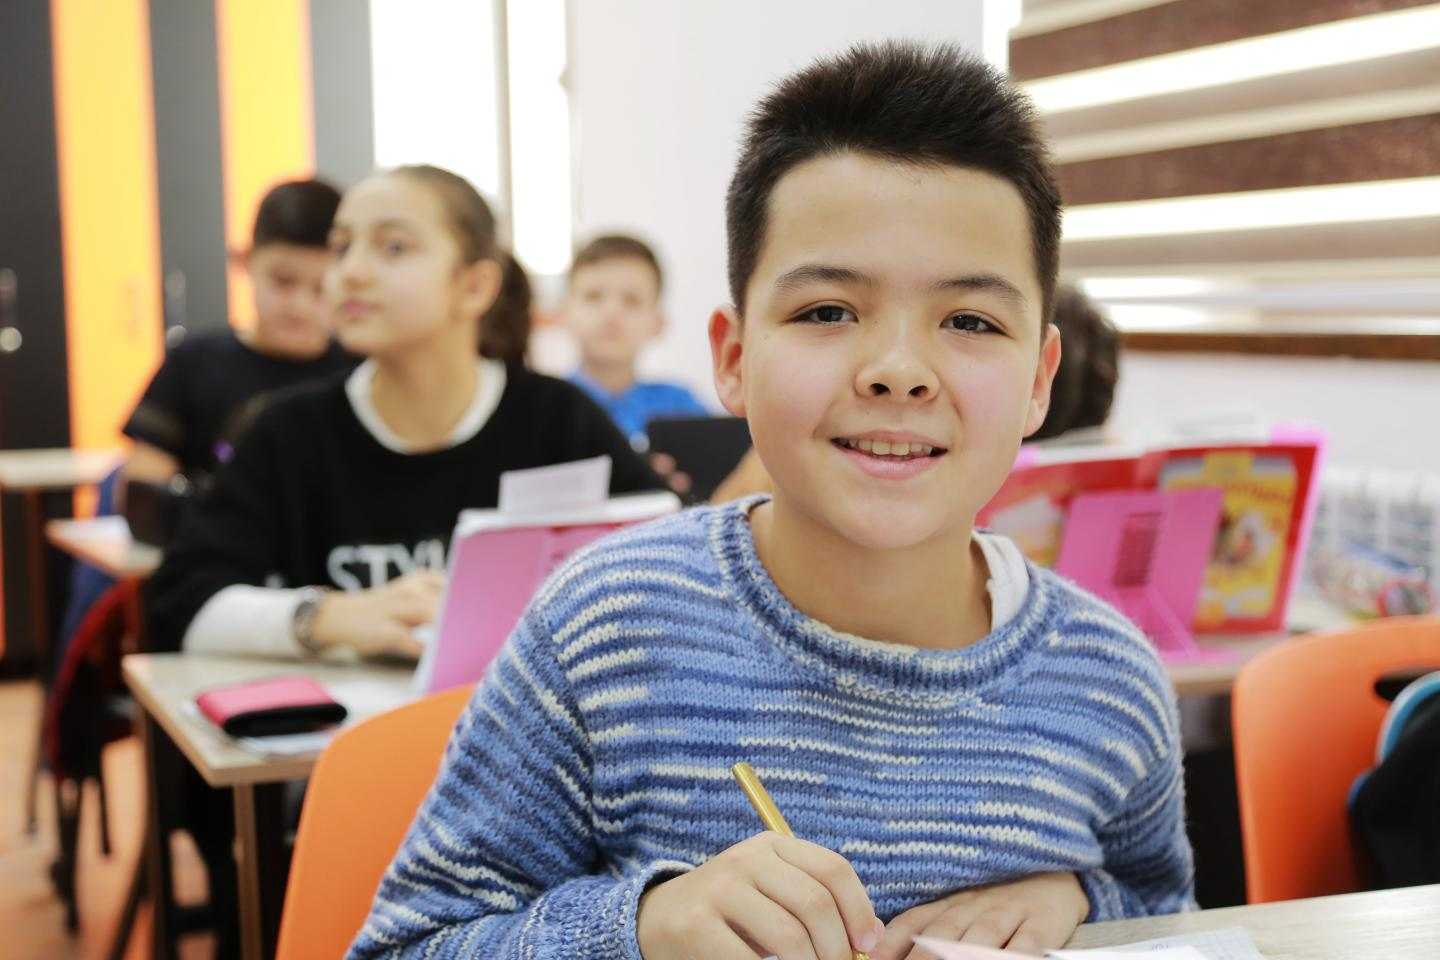 Global Standards to Embed Health and Wellbeing into Education System